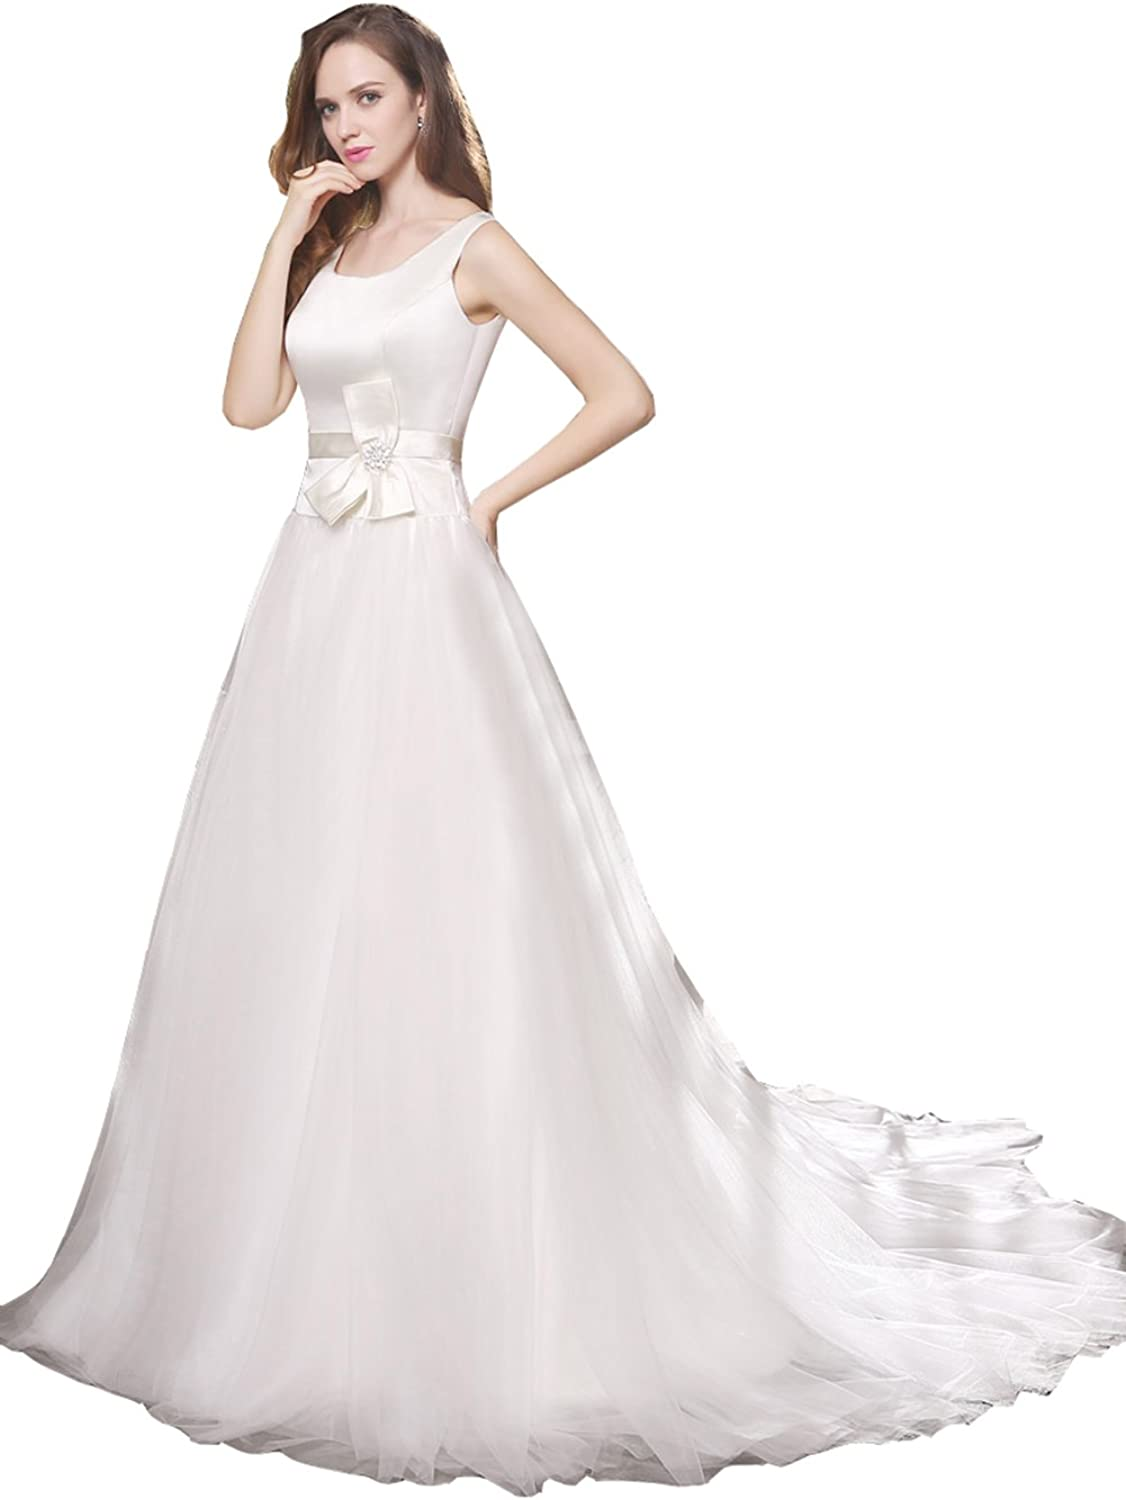 Datangep Women's Boat Neck Empire ALine Satin Tulle Wedding Dress with Train